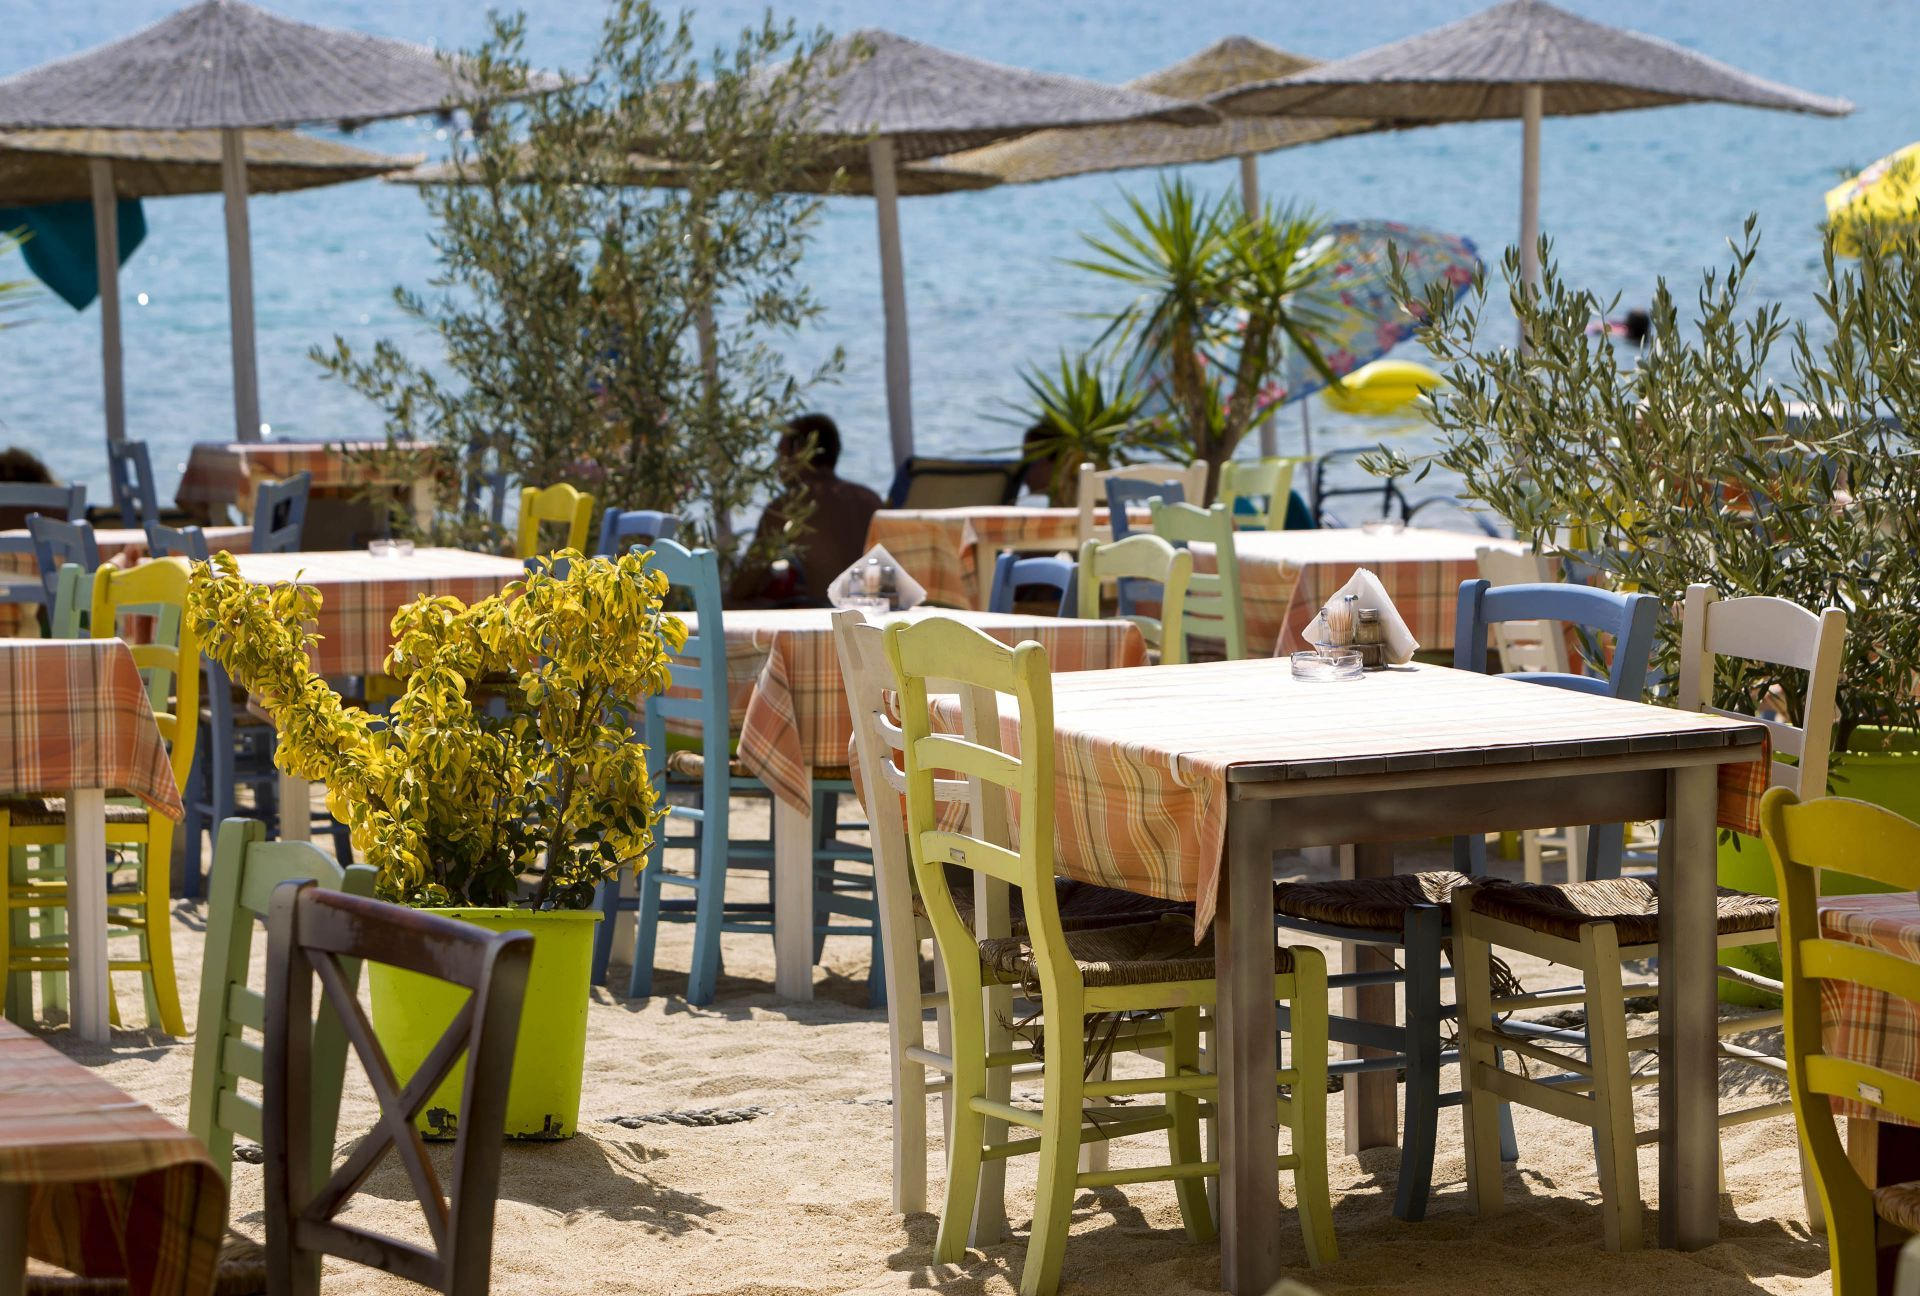 Places to eat and drink in Halkidiki